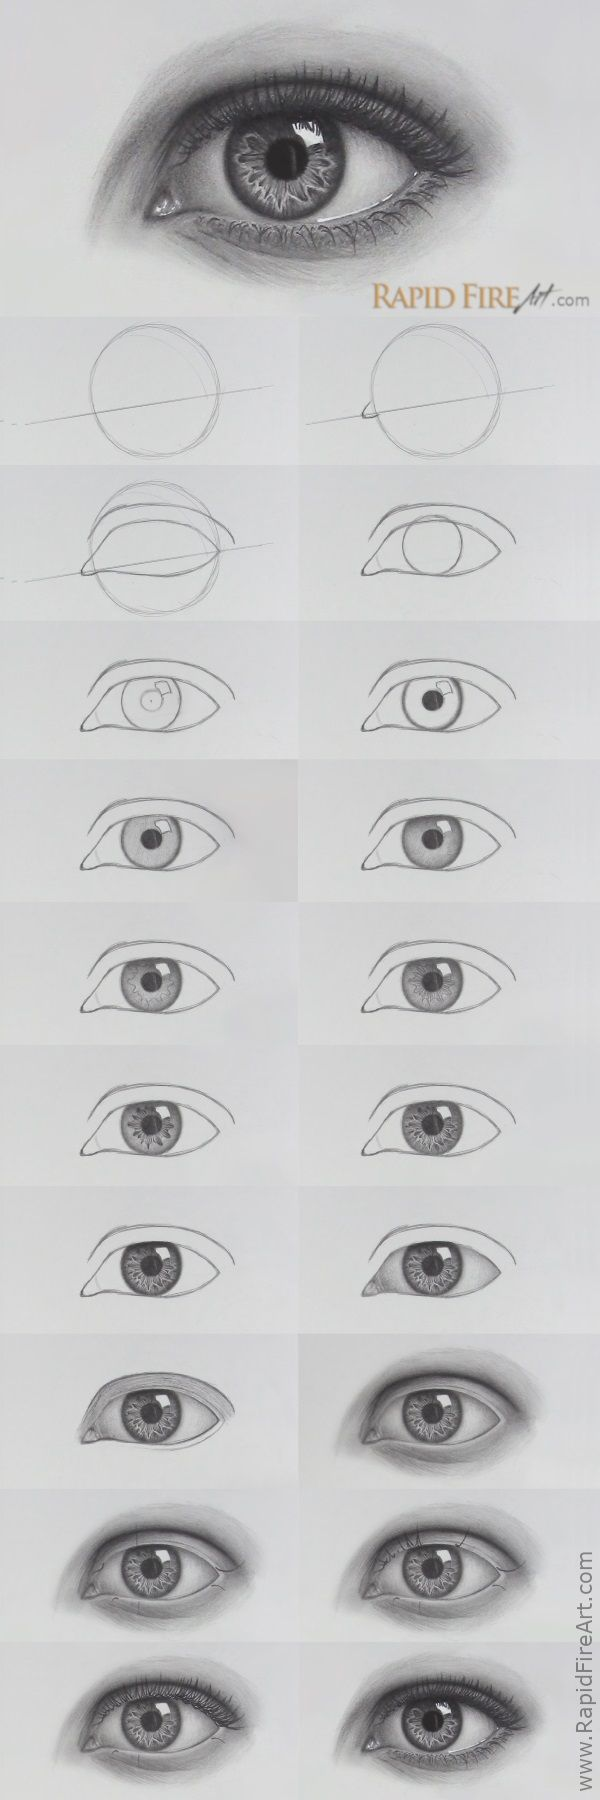 How to draw Realistic EYES | Steps